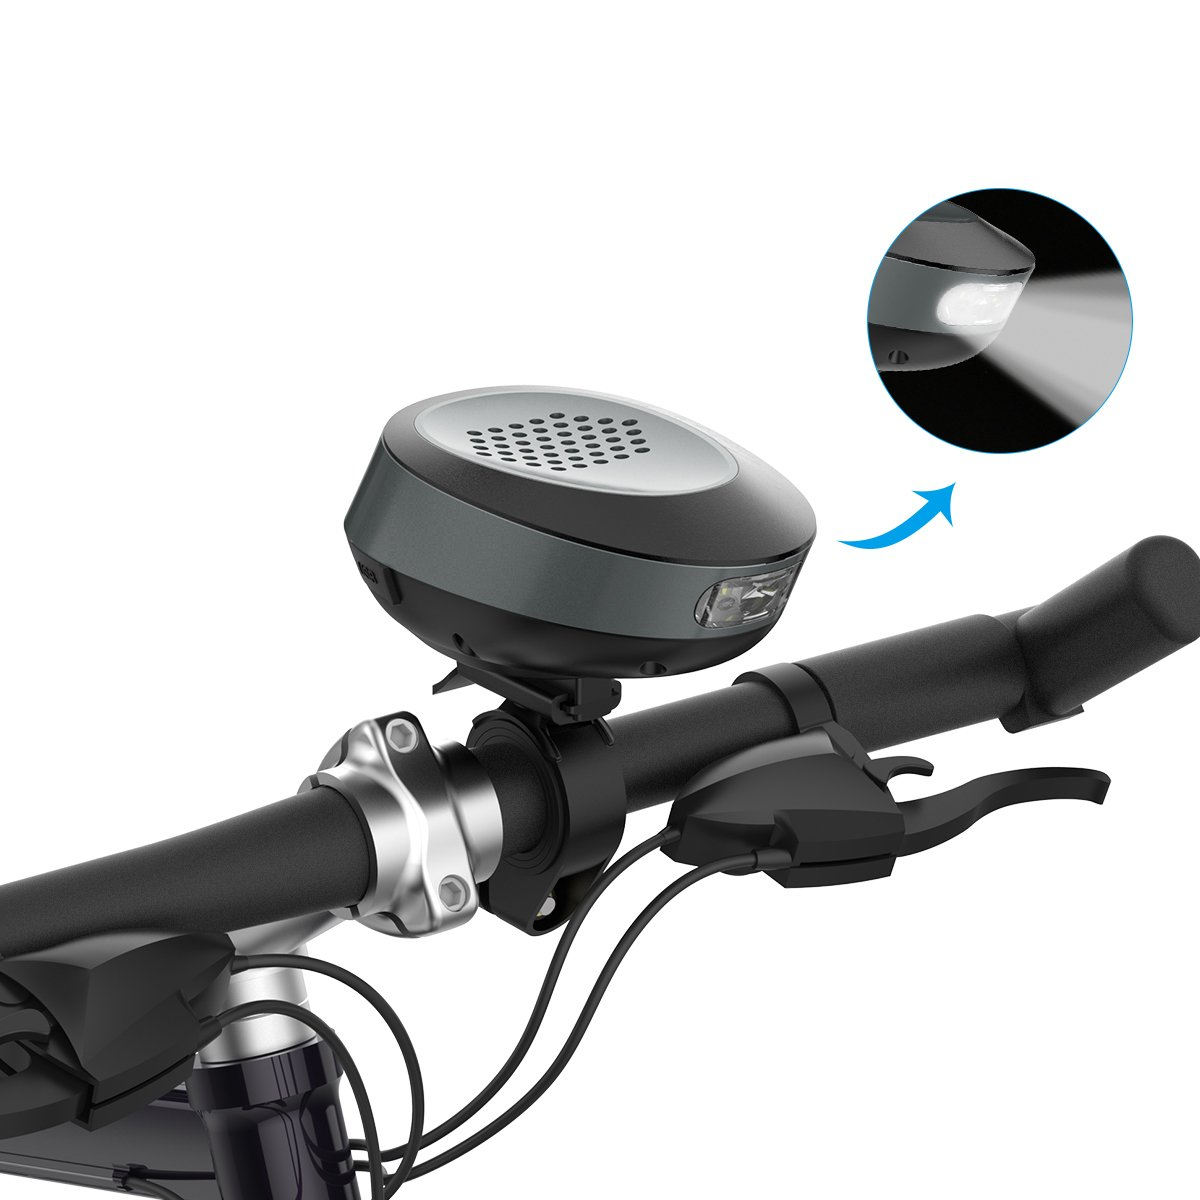 TOENNESEN BTS26 Bluetooth Bicycle Speaker Outdoor Sport Waterproof Portable Wireless Bike Speaker with LED Flashlight Hands-Free Call for iPods, Cell Phones, Android Devices and MP3 Players-Gray